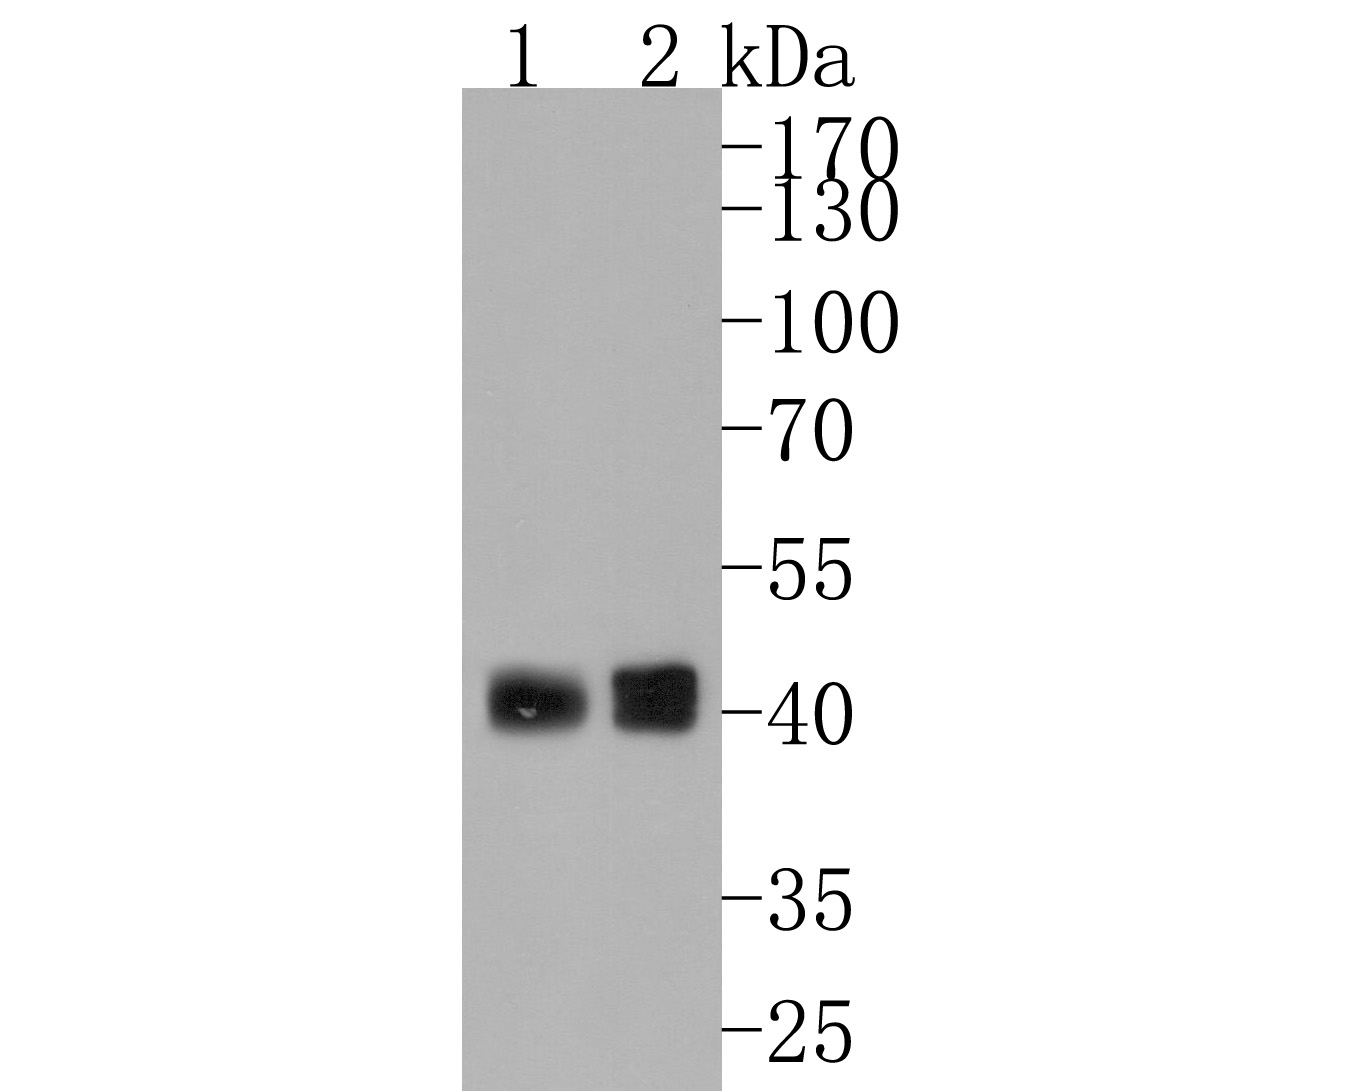 Western blot analysis of Fas(CD95) on different lysates. Proteins were transferred to a PVDF membrane and blocked with 5% BSA in PBS for 1 hour at room temperature. The primary antibody (ET1701-92, 1/500) was used in 5% BSA at room temperature for 2 hours. Goat Anti-Rabbit IgG - HRP Secondary Antibody (HA1001) at 1:5,000 dilution was used for 1 hour at room temperature.<br /> Positive control: <br /> Lane 1: Raji cell lysate<br /> Lane 2: Hela cell lysate